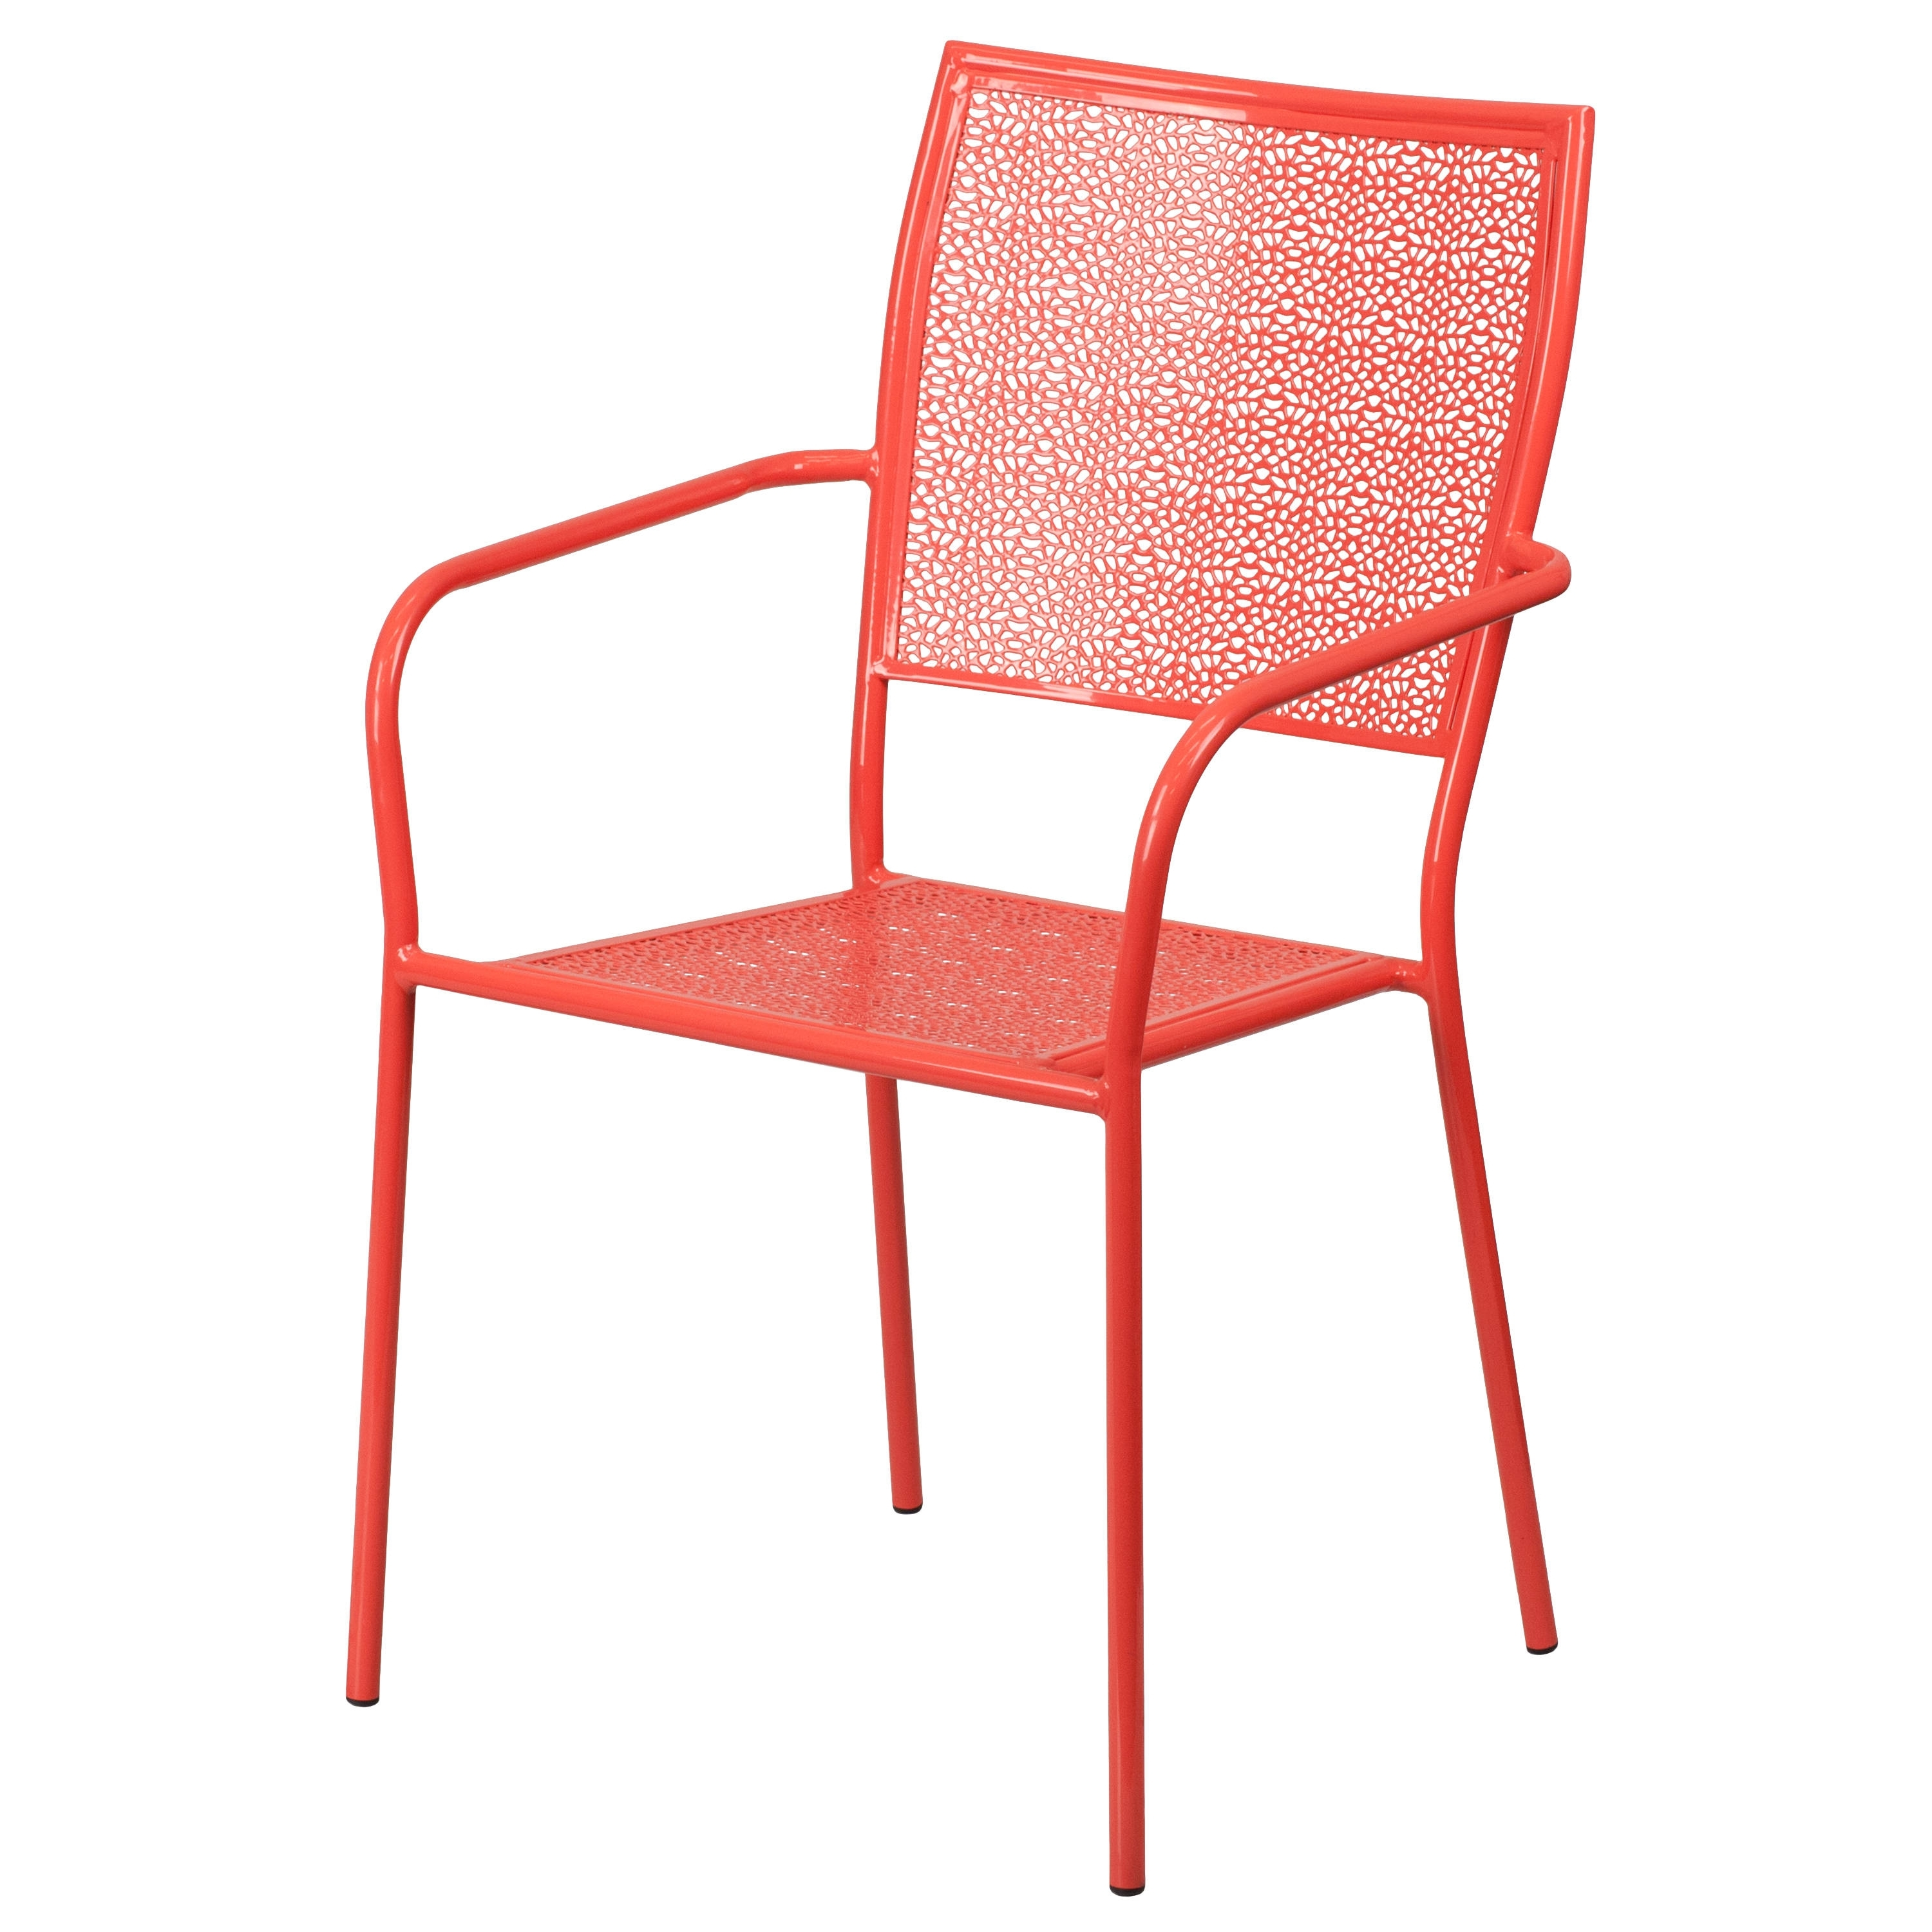 Newest Flash Furniture Coral Indoor Outdoor Patio Arm Chair With Square For Cora Ii Arm Chairs (Gallery 4 of 20)